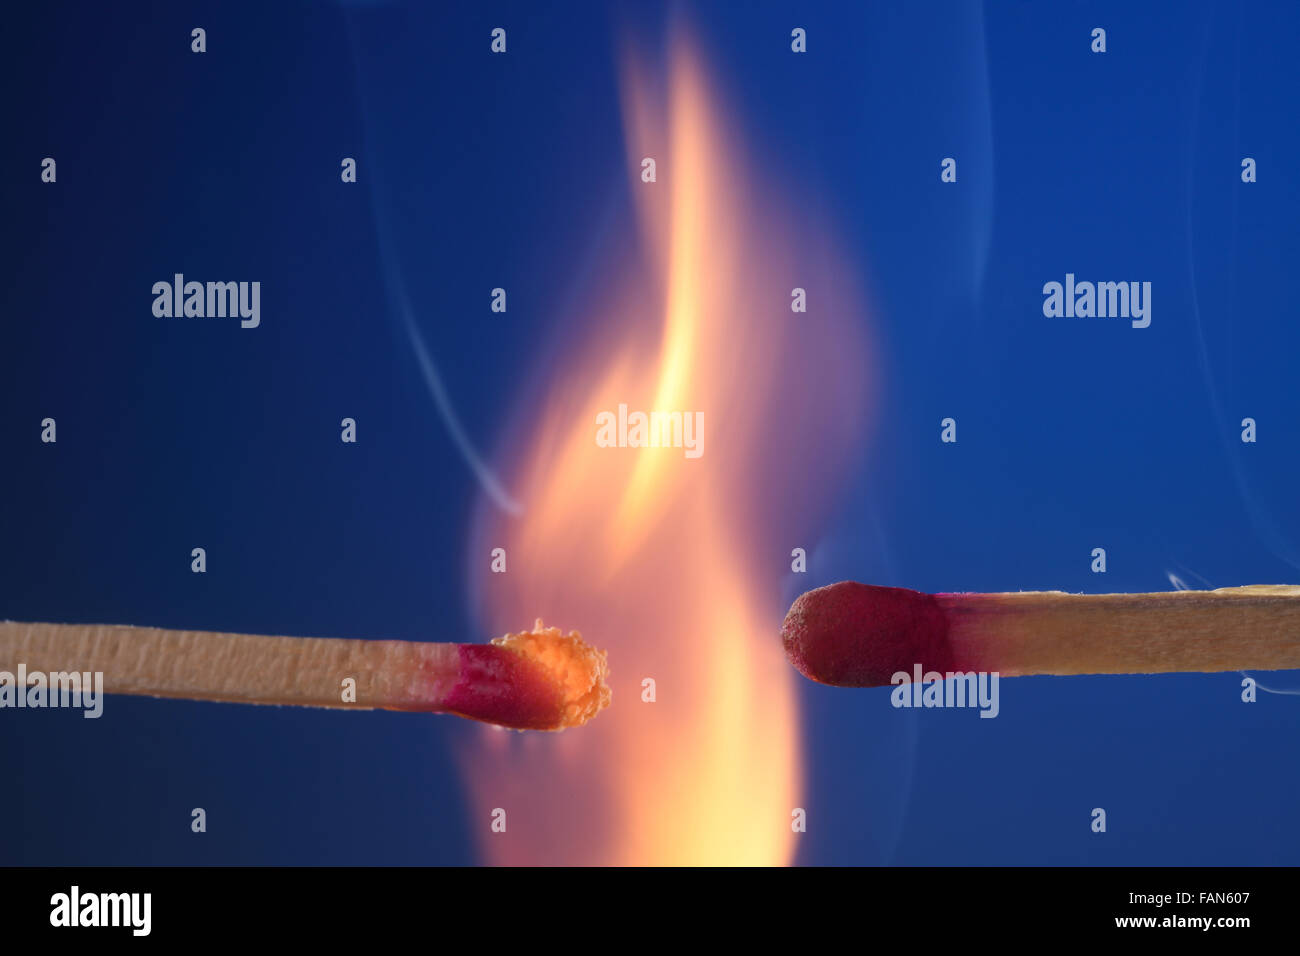 lit matchstick next to an unlit matchstick - Stock Image